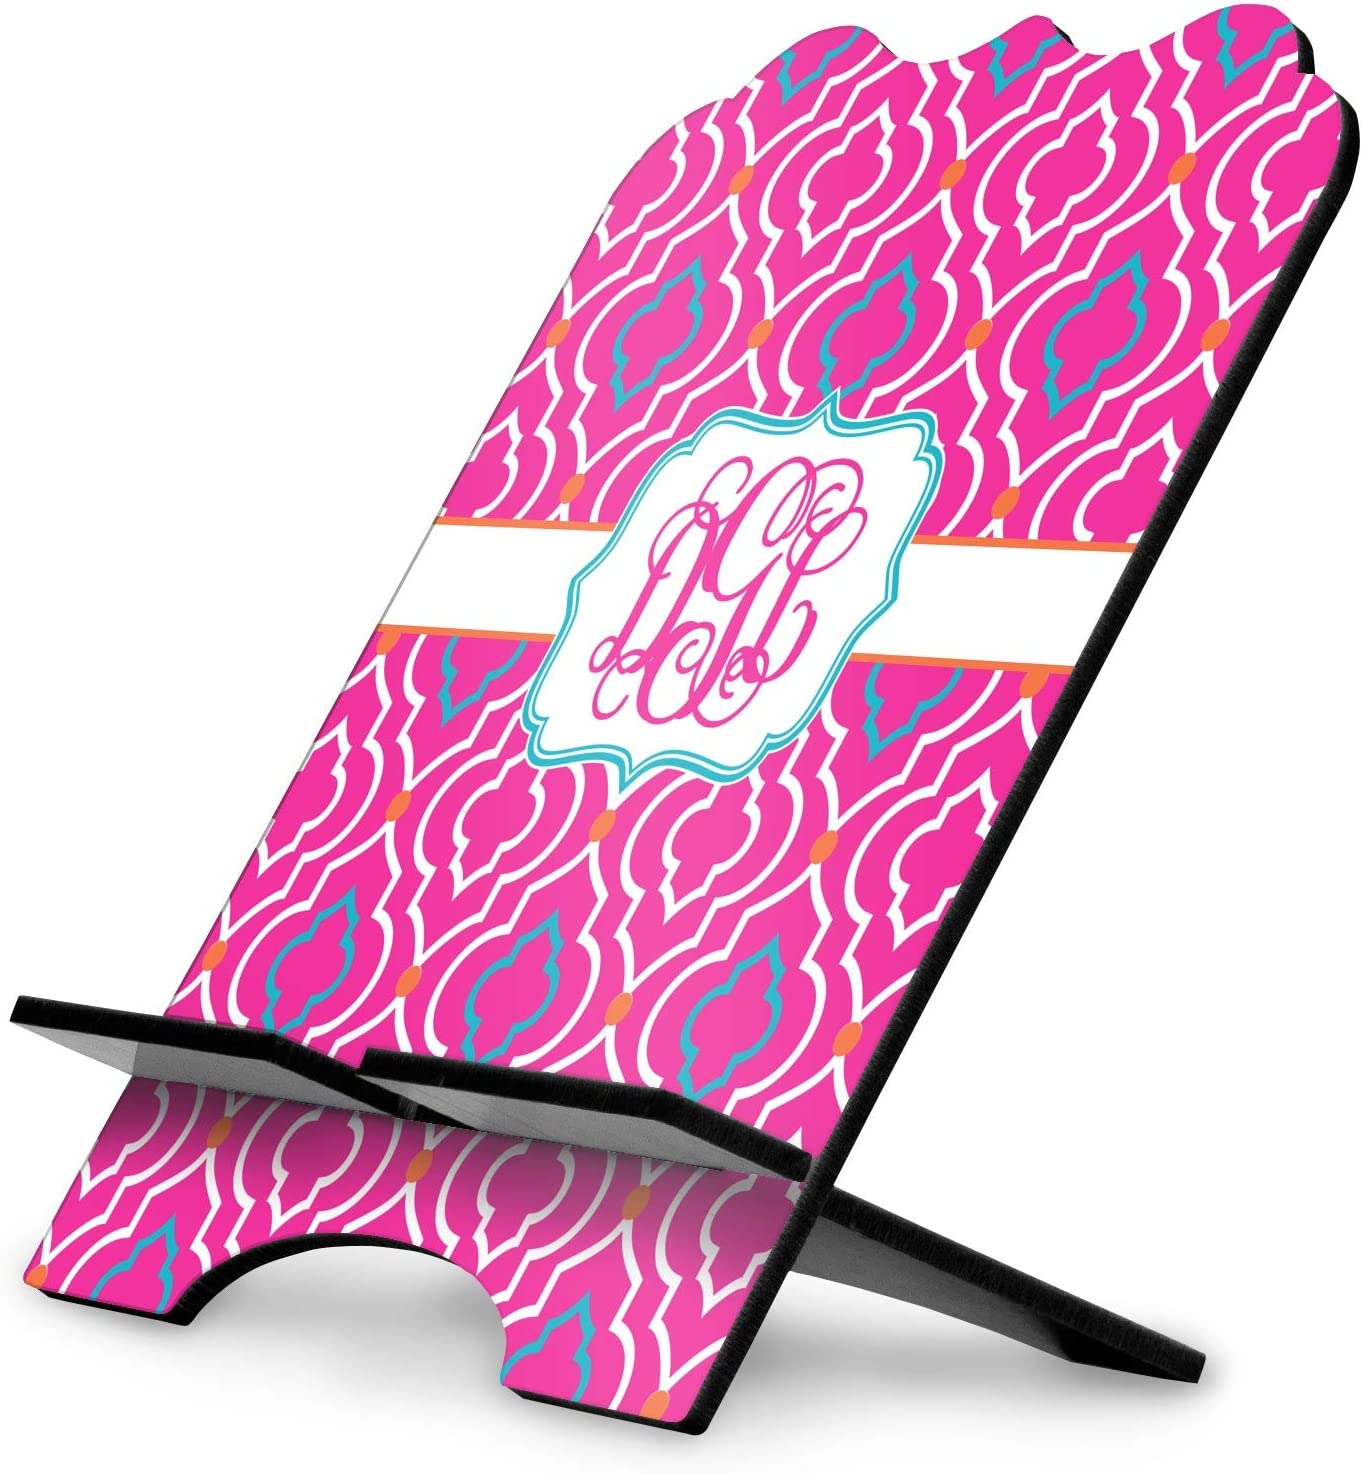 YouCustomizeIt Colorful Trellis Stylized Tablet Stand Personalized